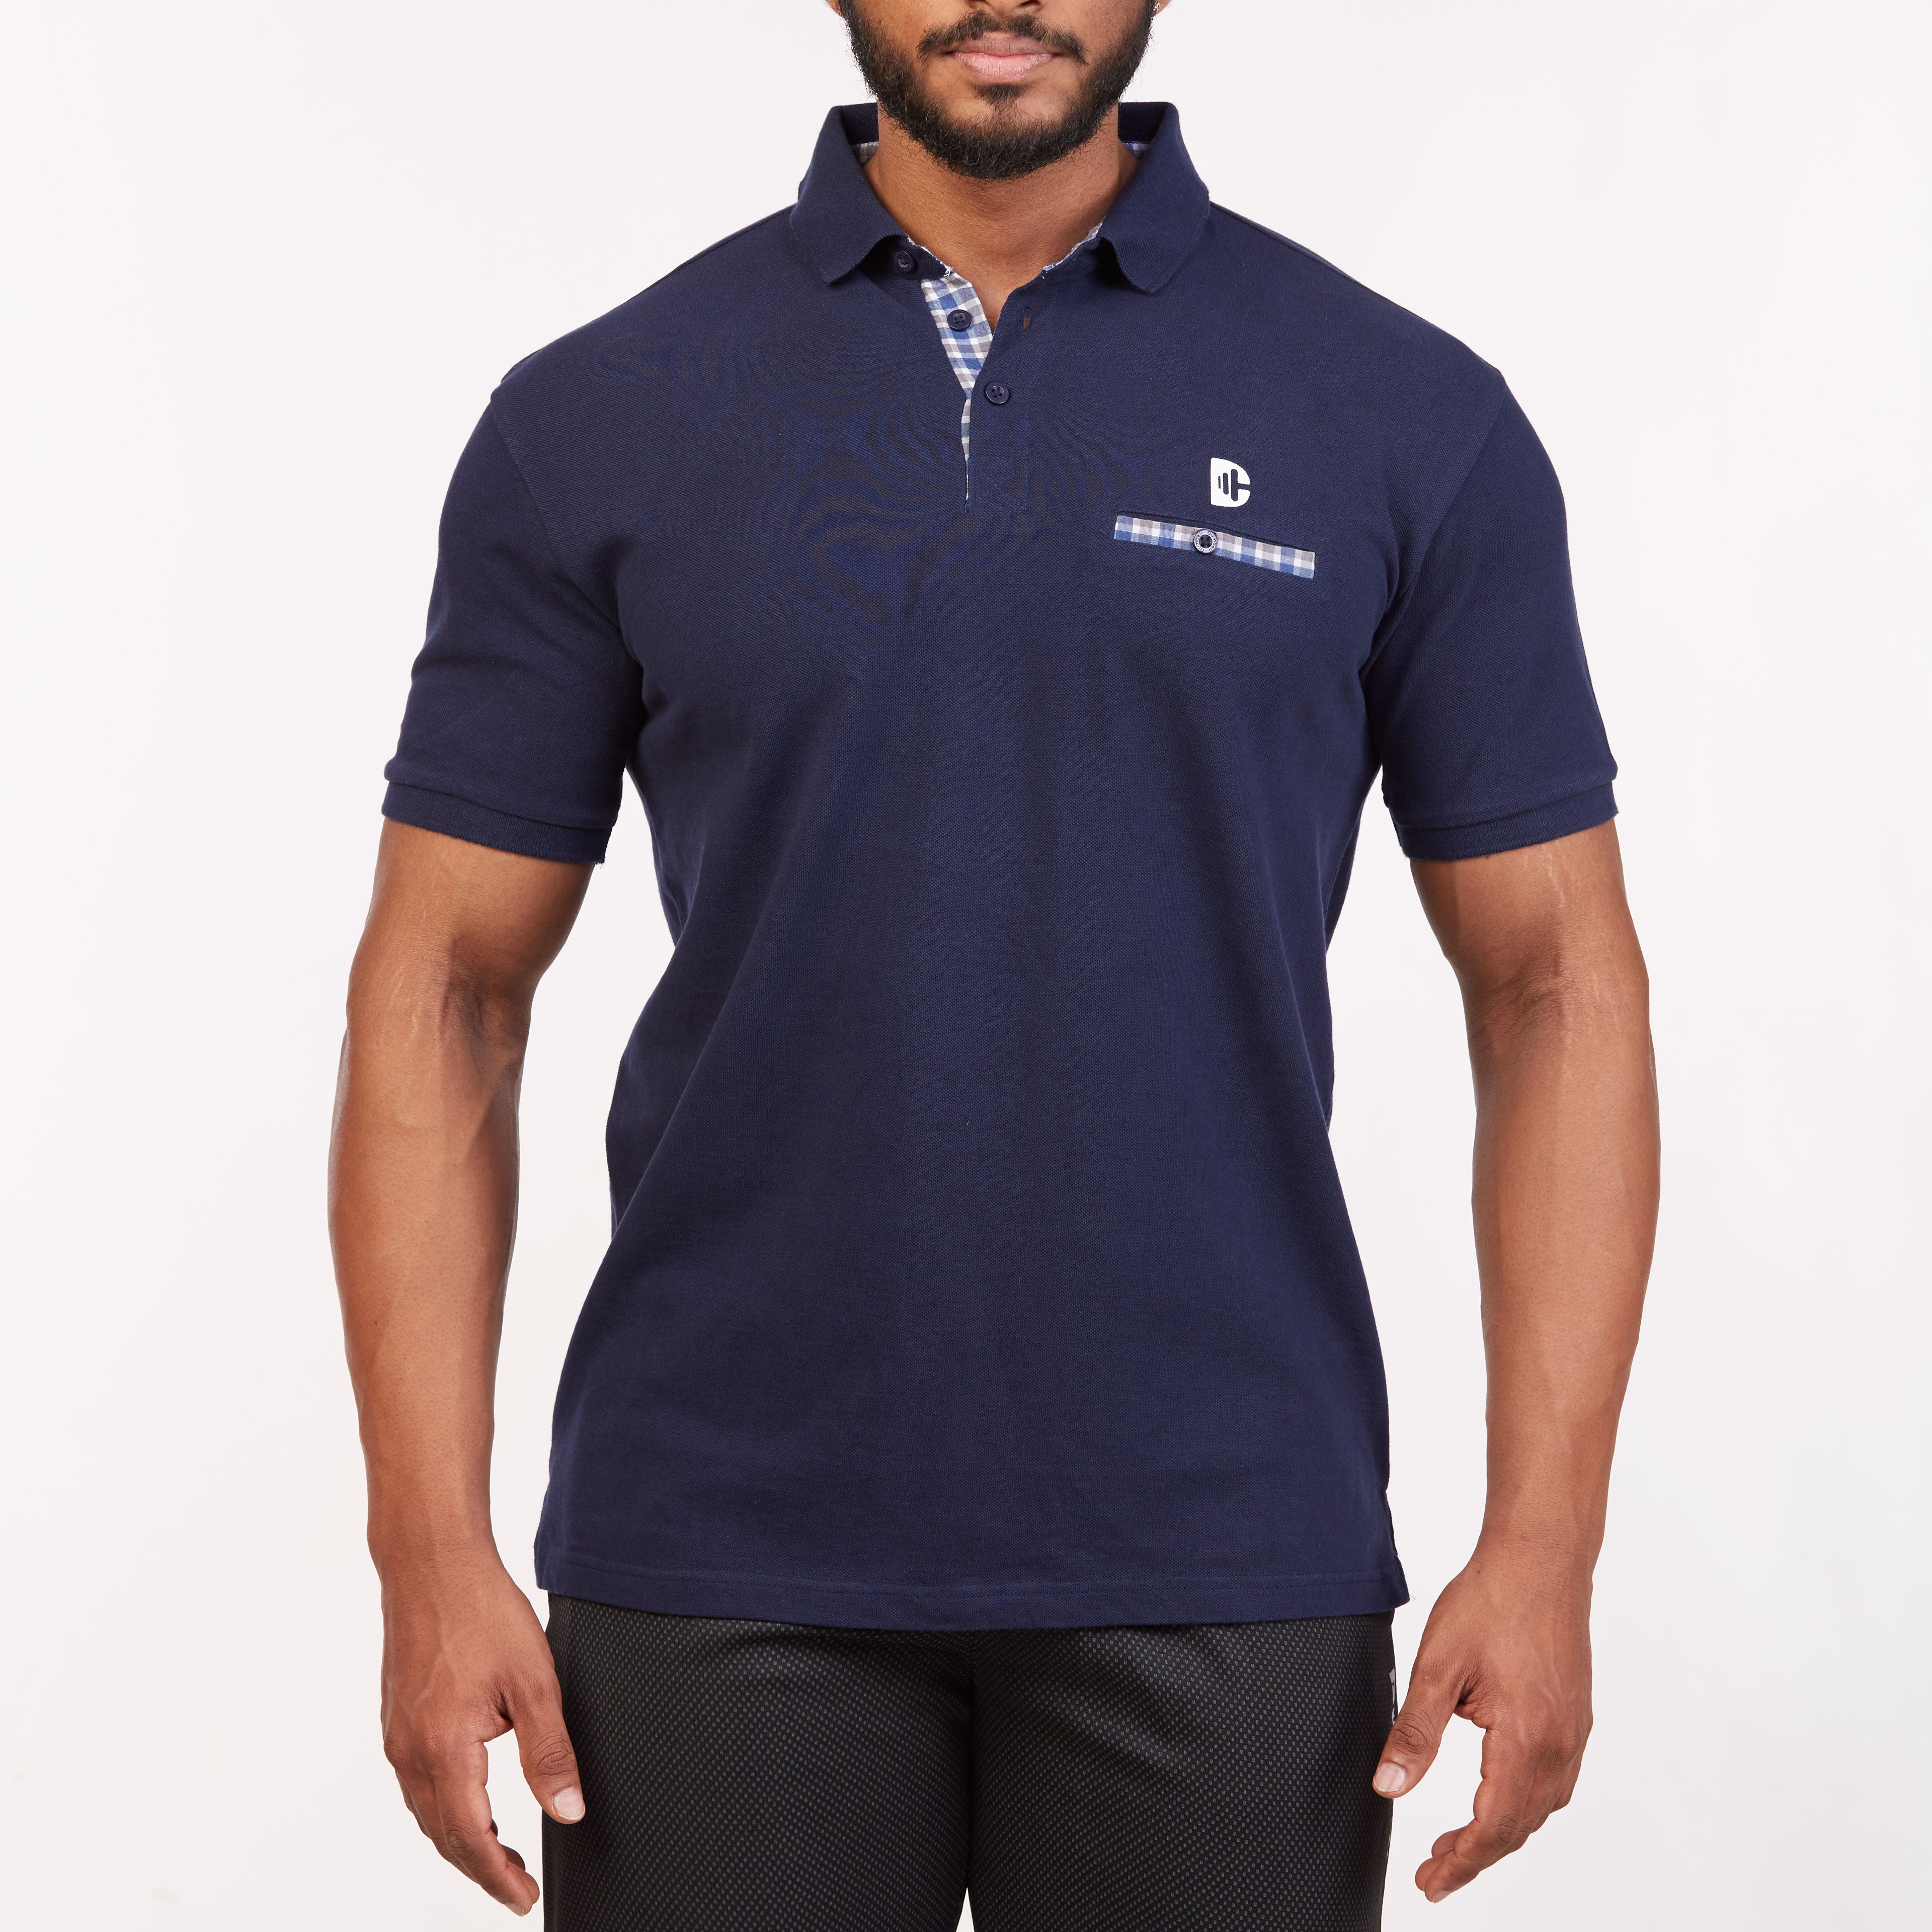 DB024 Polo T-Shirt - Navy